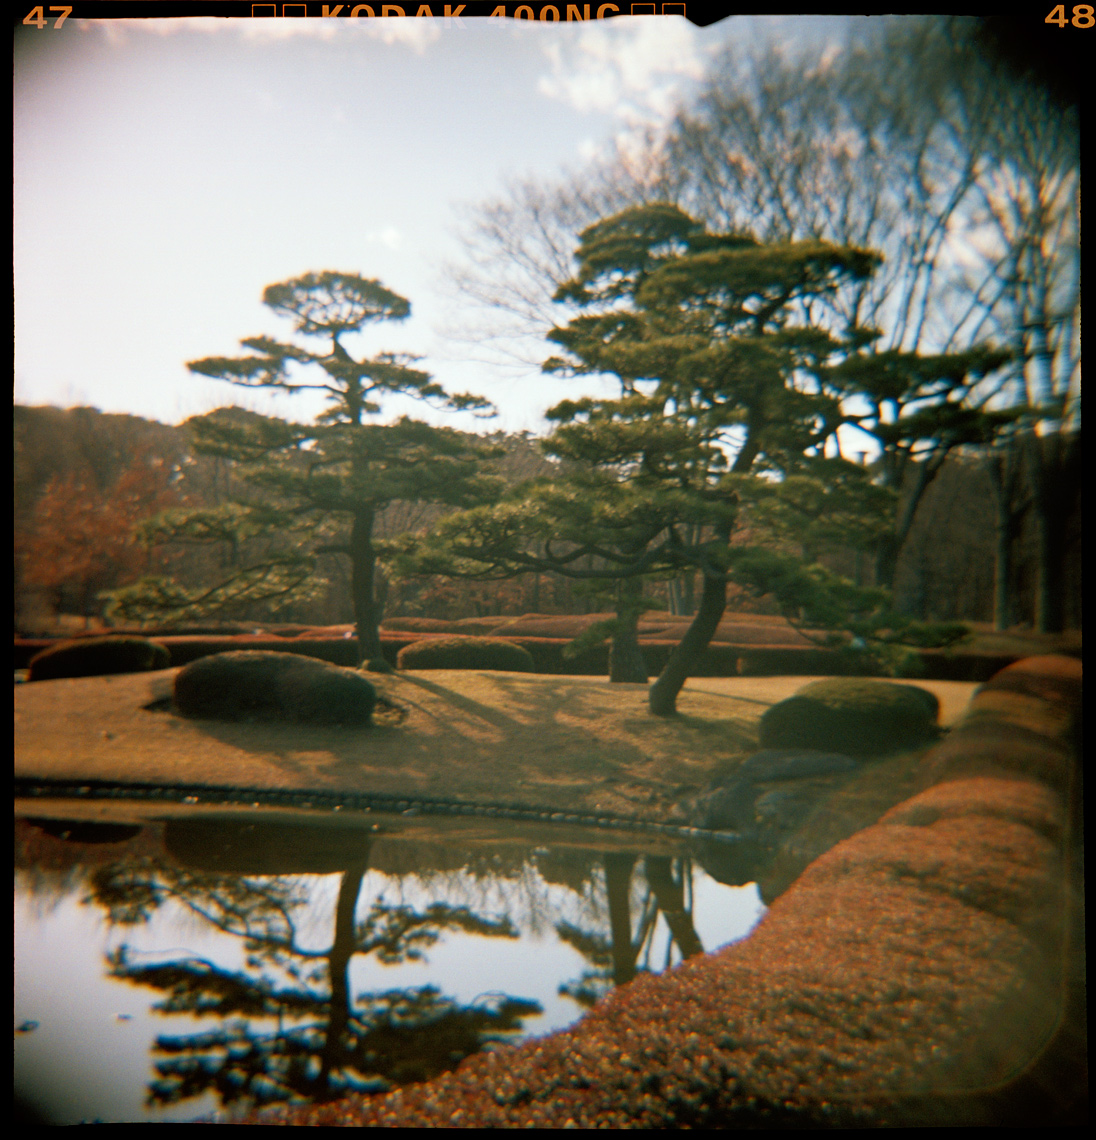 HDinas_Travel_JapaneseGarden.jpg